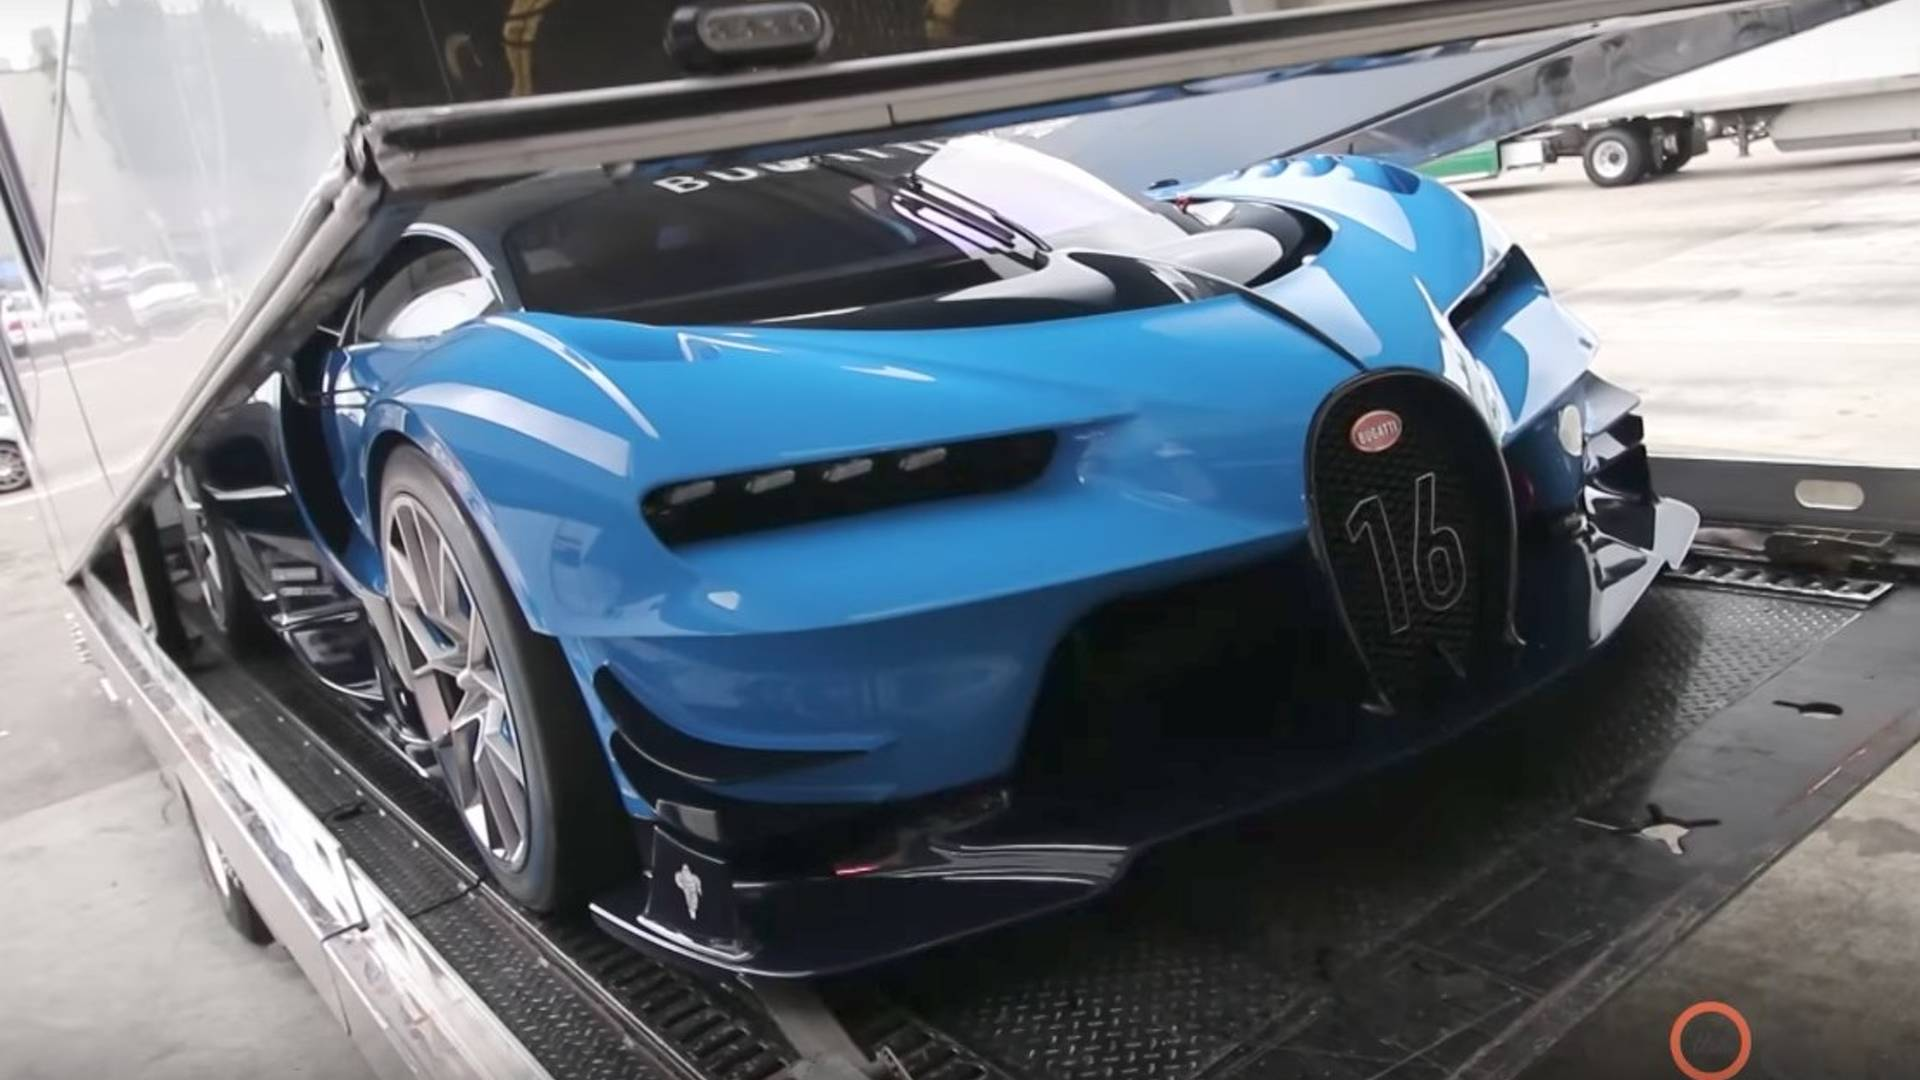 set of spare tires for the bugatti vision gt cost 93 000. Black Bedroom Furniture Sets. Home Design Ideas